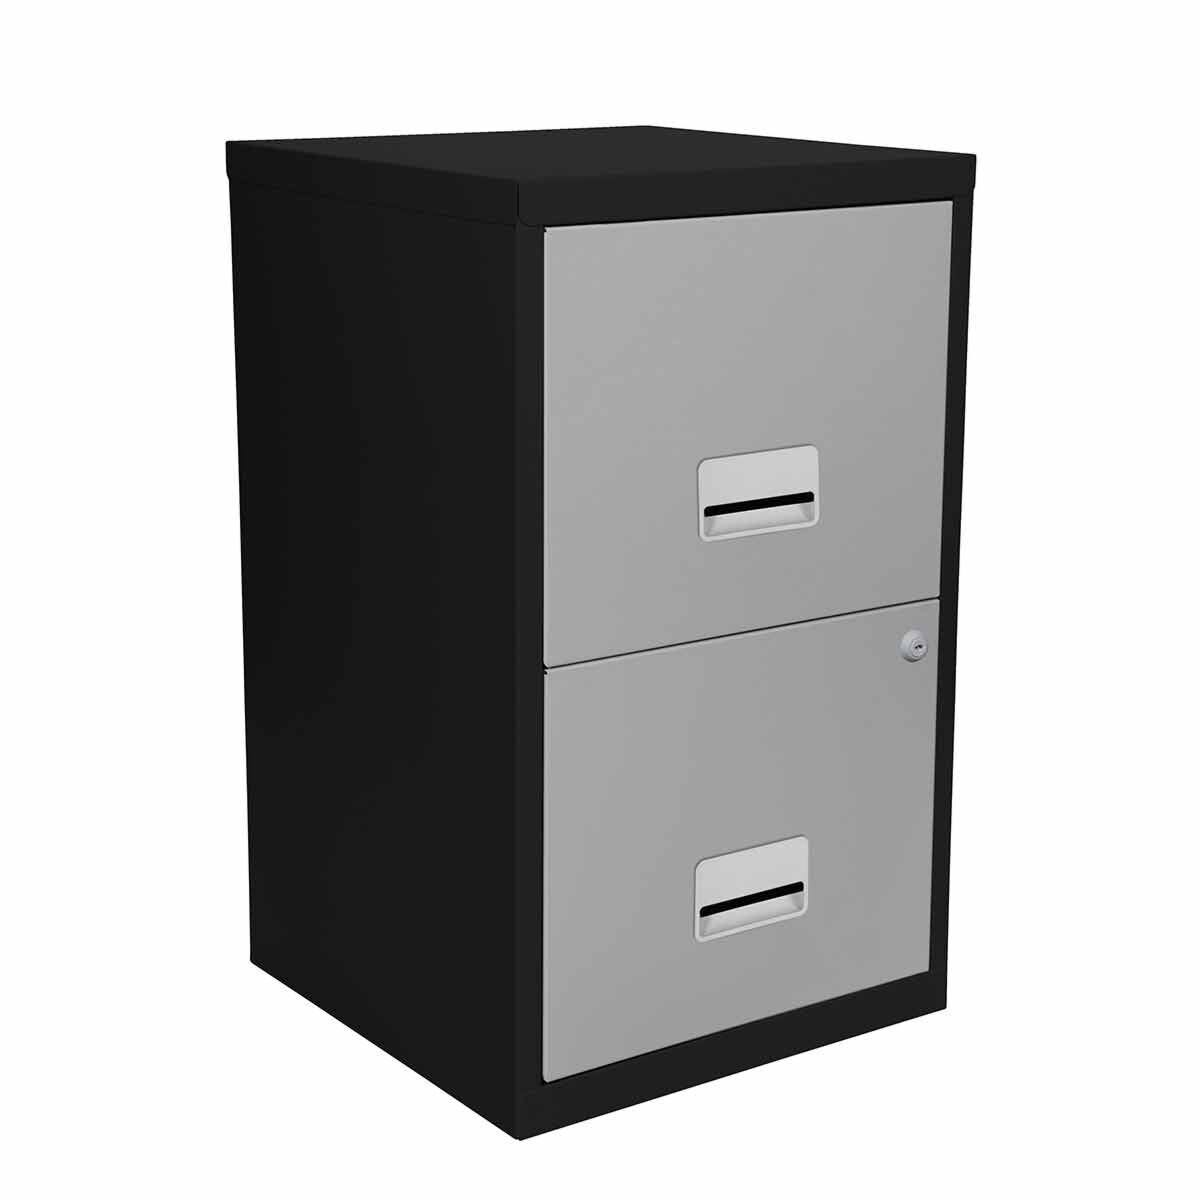 Pierre Henry Metal 2 Drawer Maxi Filing Cabinet A4 Black/Silver